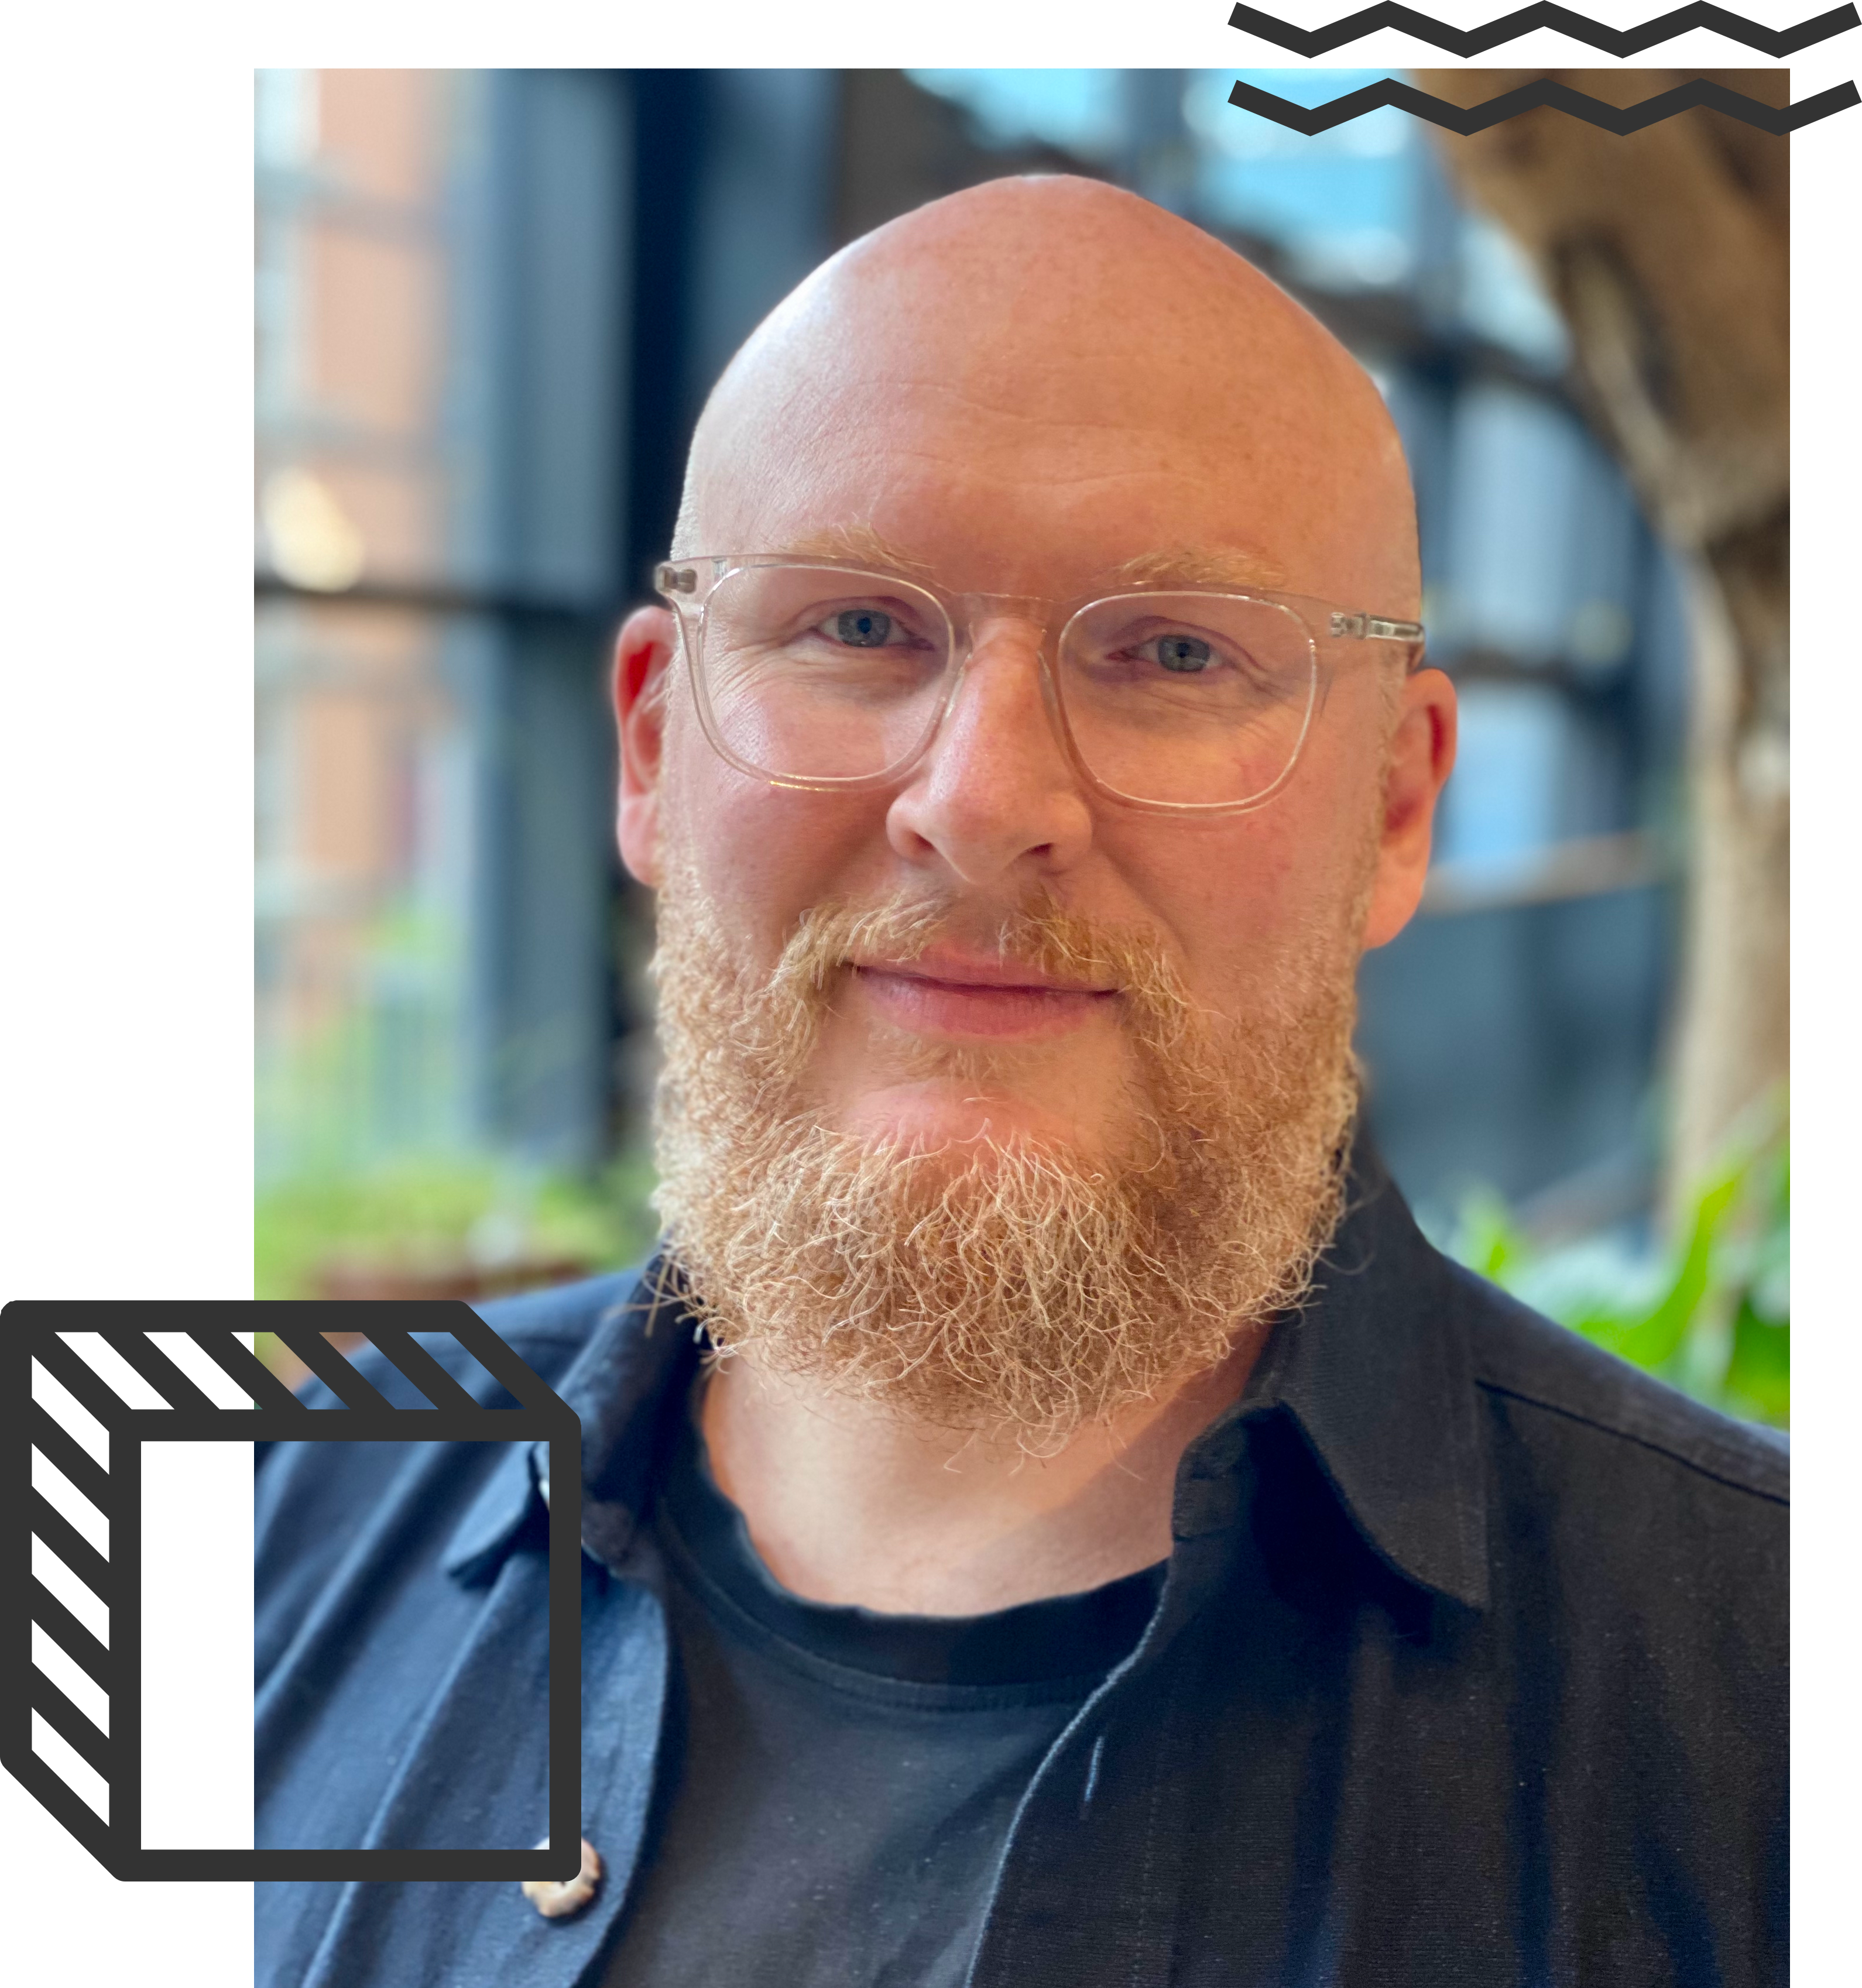 Fredrik Heghammar - Chief Transformation Officer & Co-founder at hives